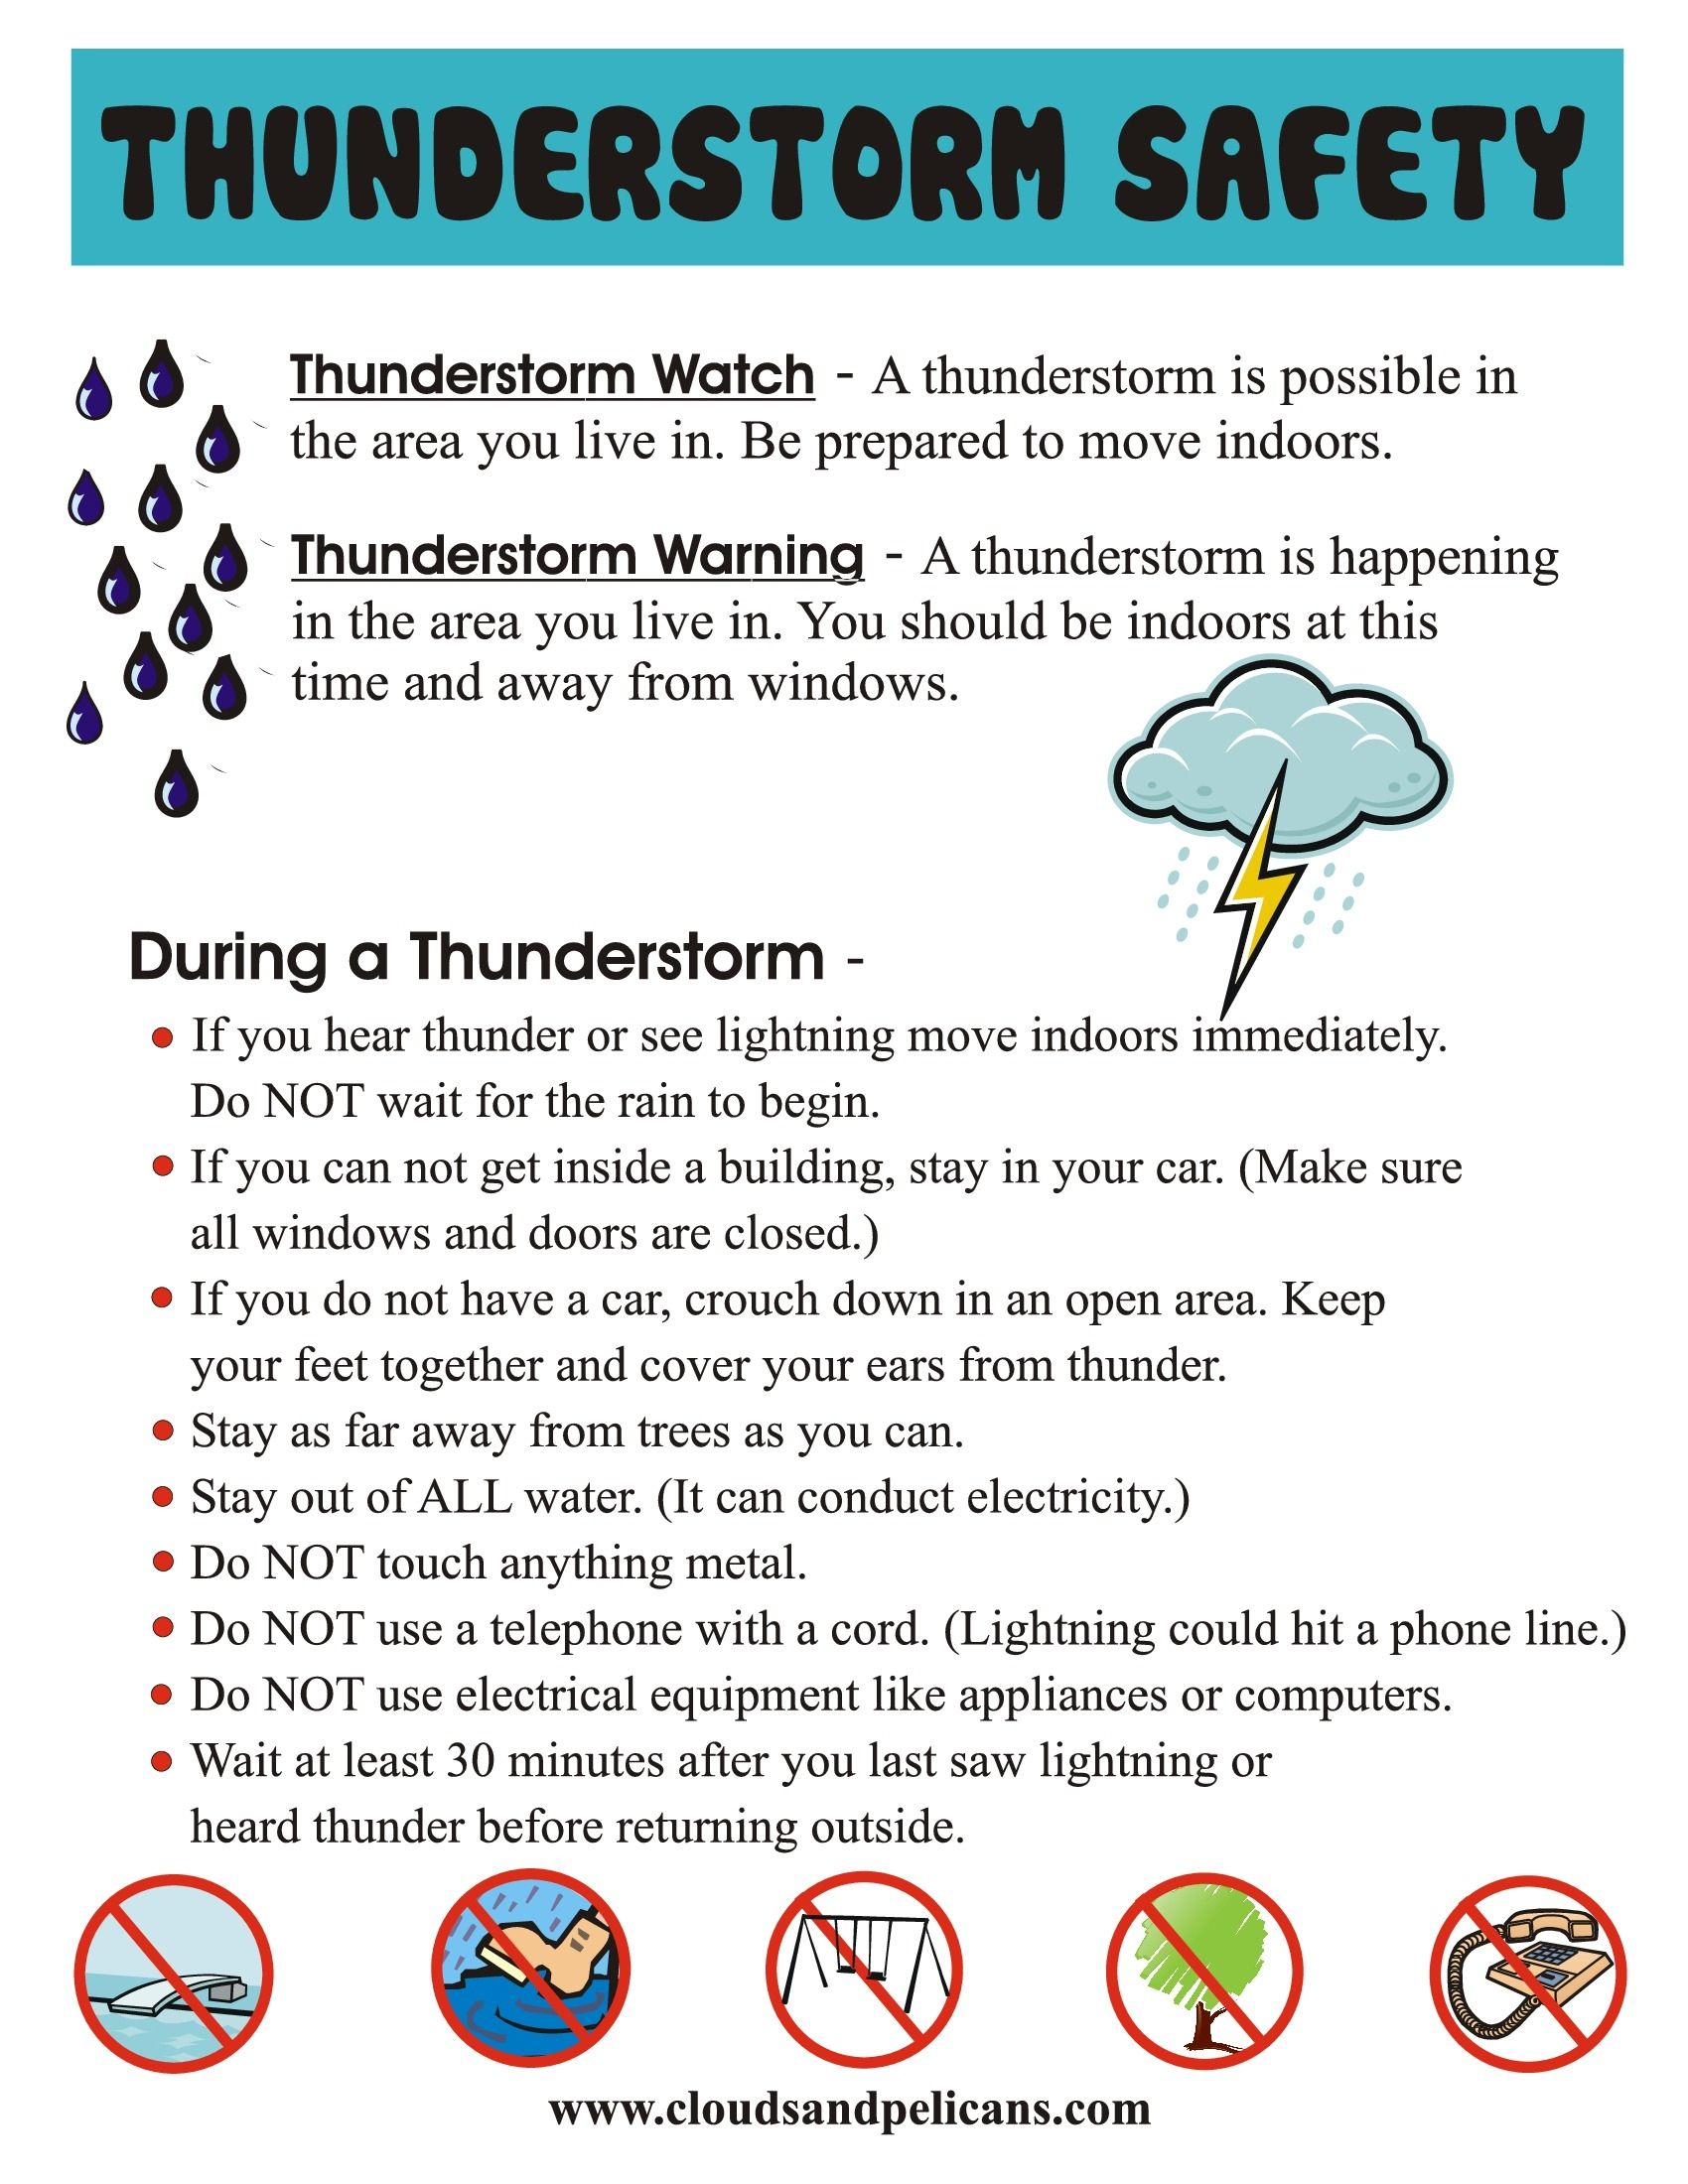 Thunderstorm Safety Tips Thunderstorms, Summer safety